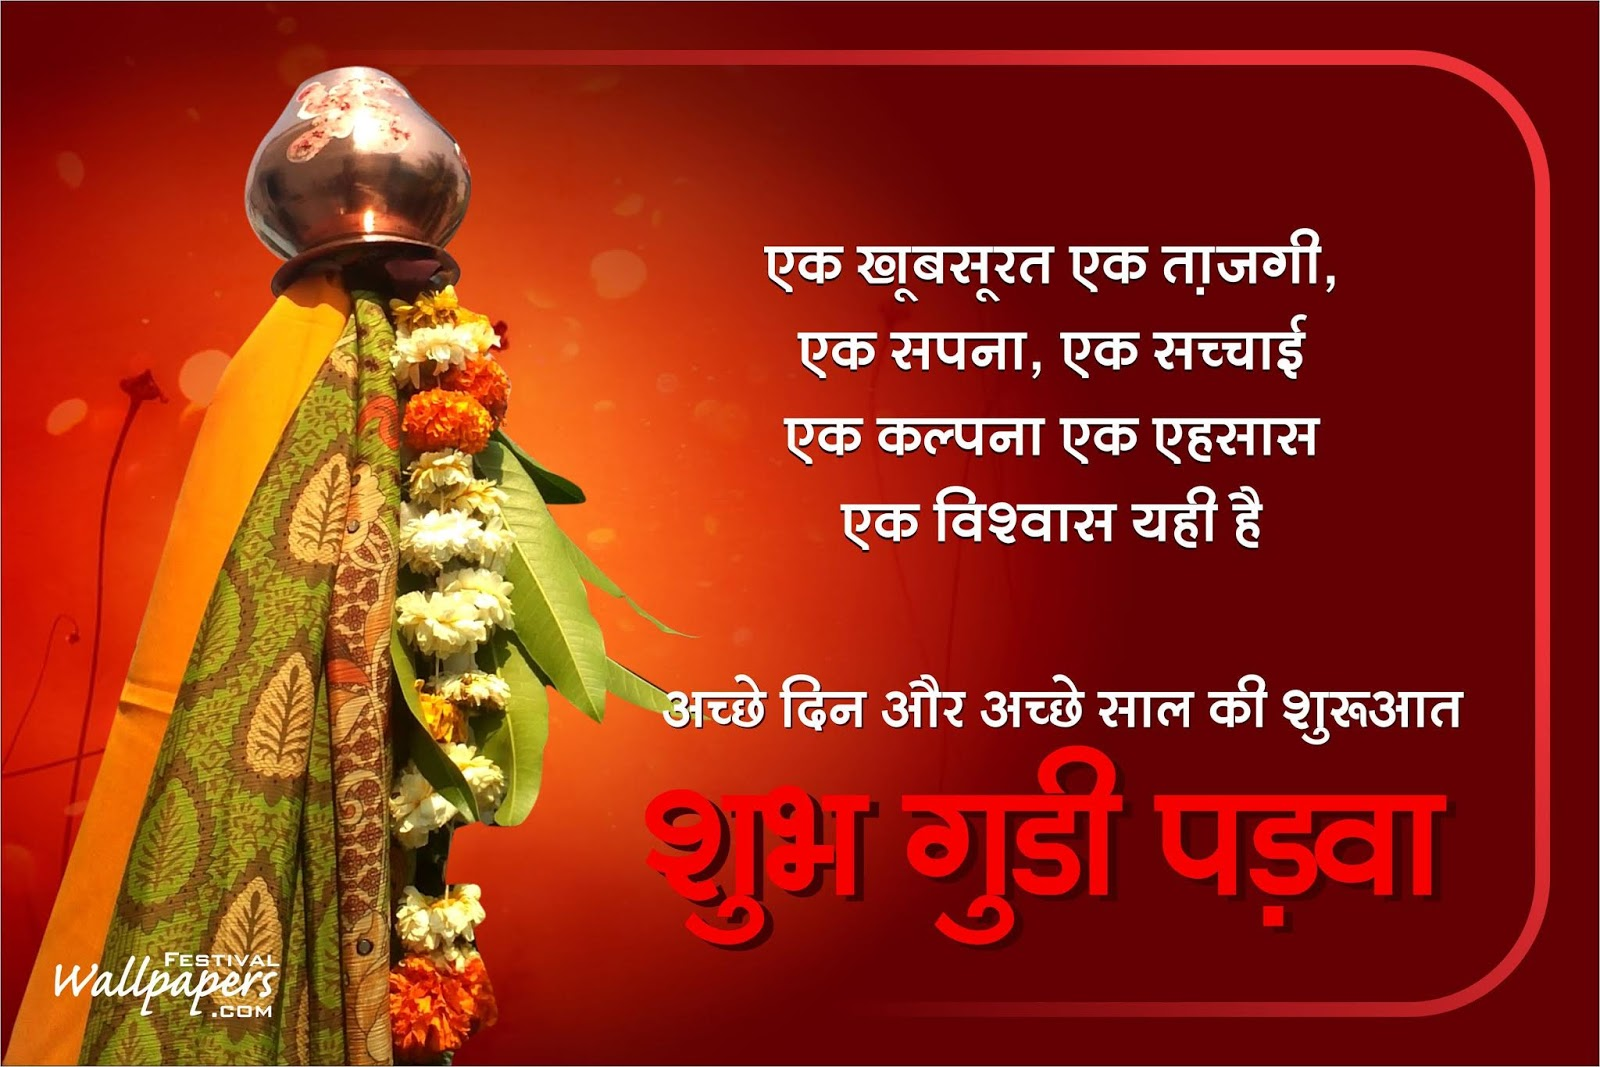 Gudi Padwa Images For Whatsapp and Facebook